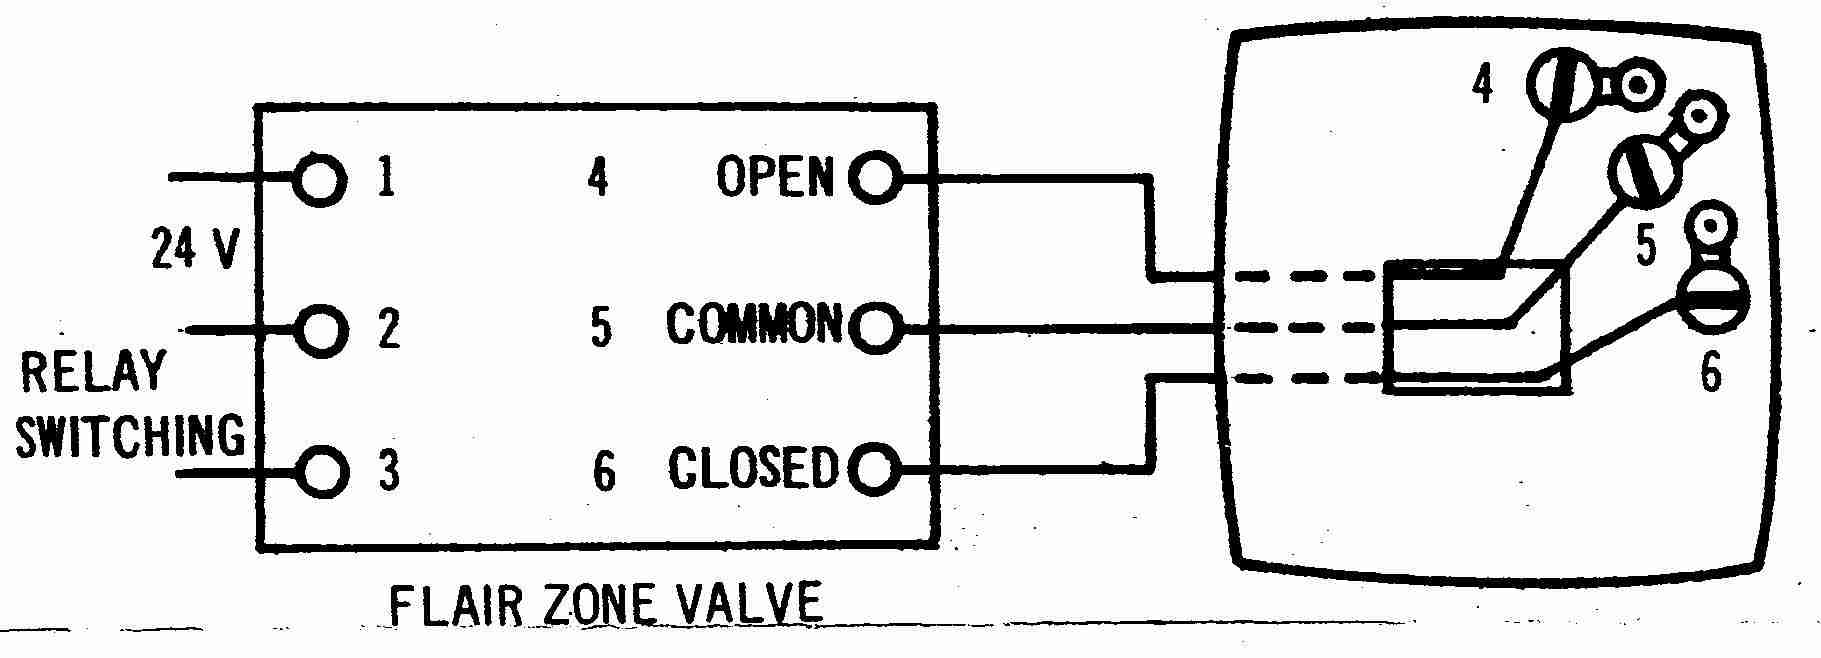 Flair3w_001_DJFc2 zone valve wiring installation & instructions guide to heating honeywell v8043e1012 wiring diagram at gsmportal.co